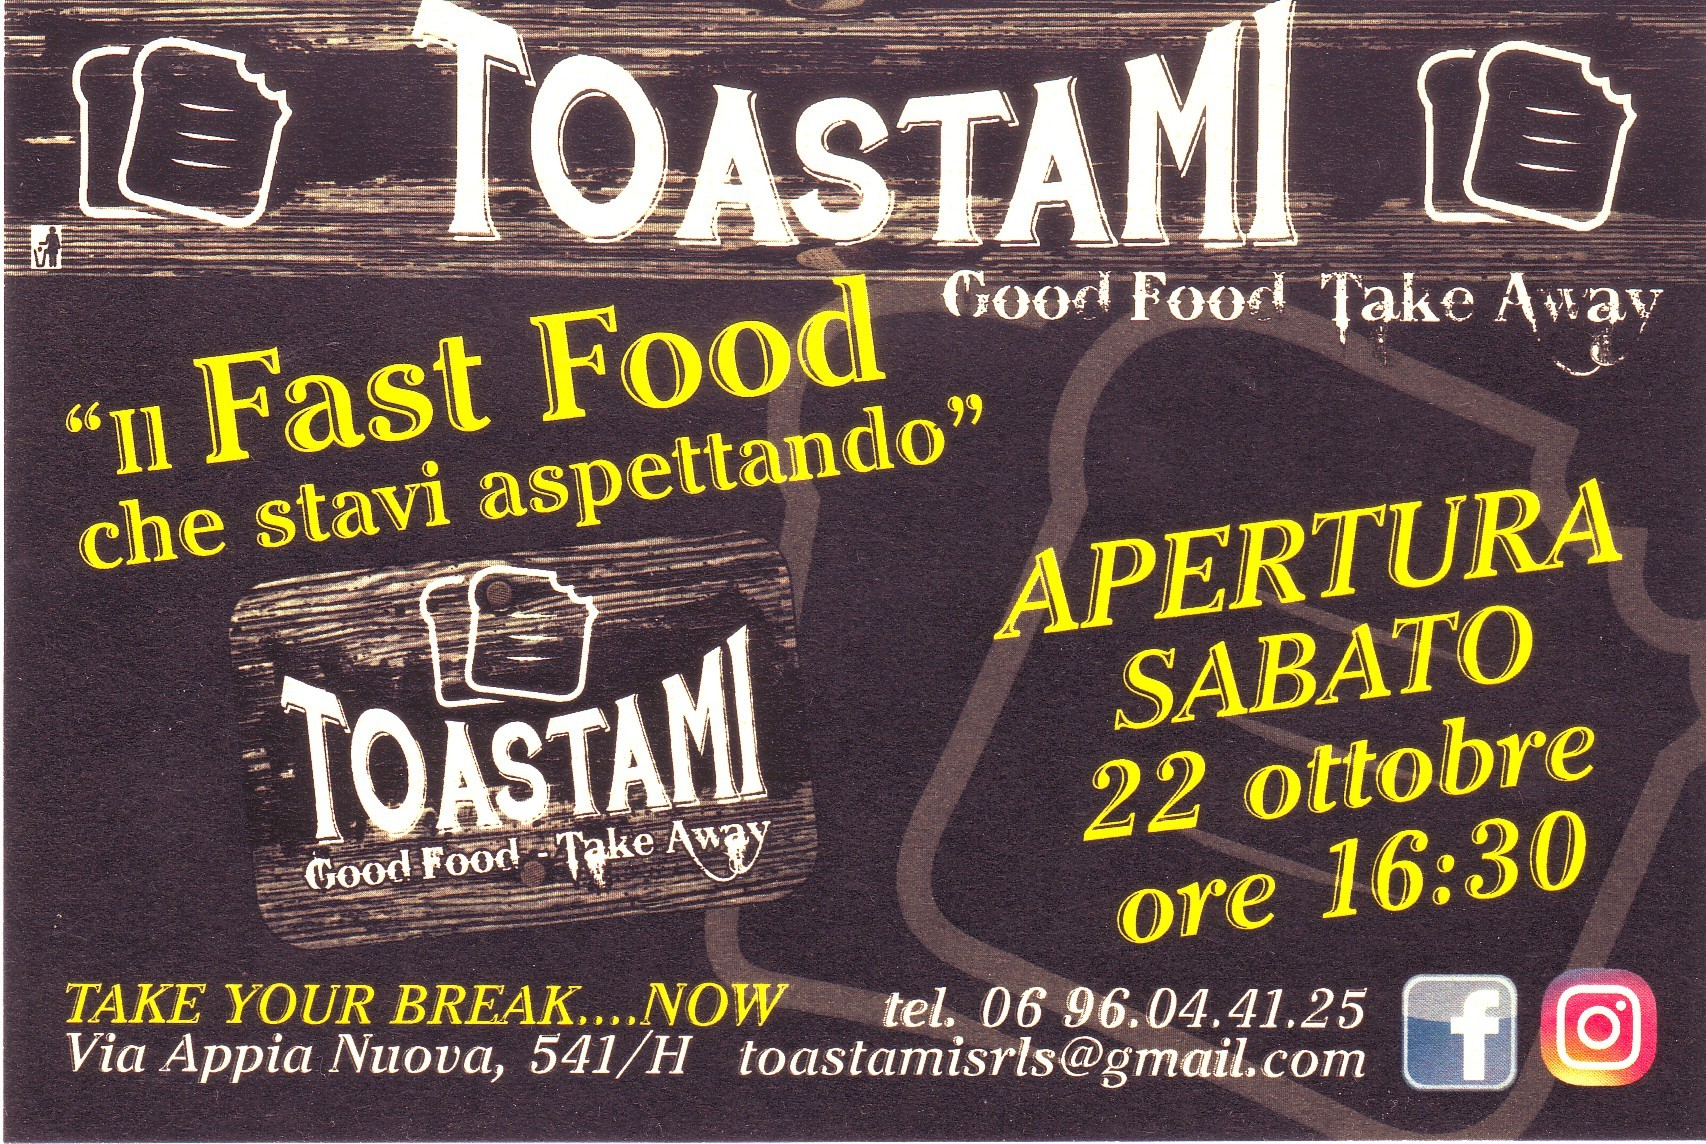 """ Il Fast Food che stavi aspettando "" tostami Good Food - Take Away"